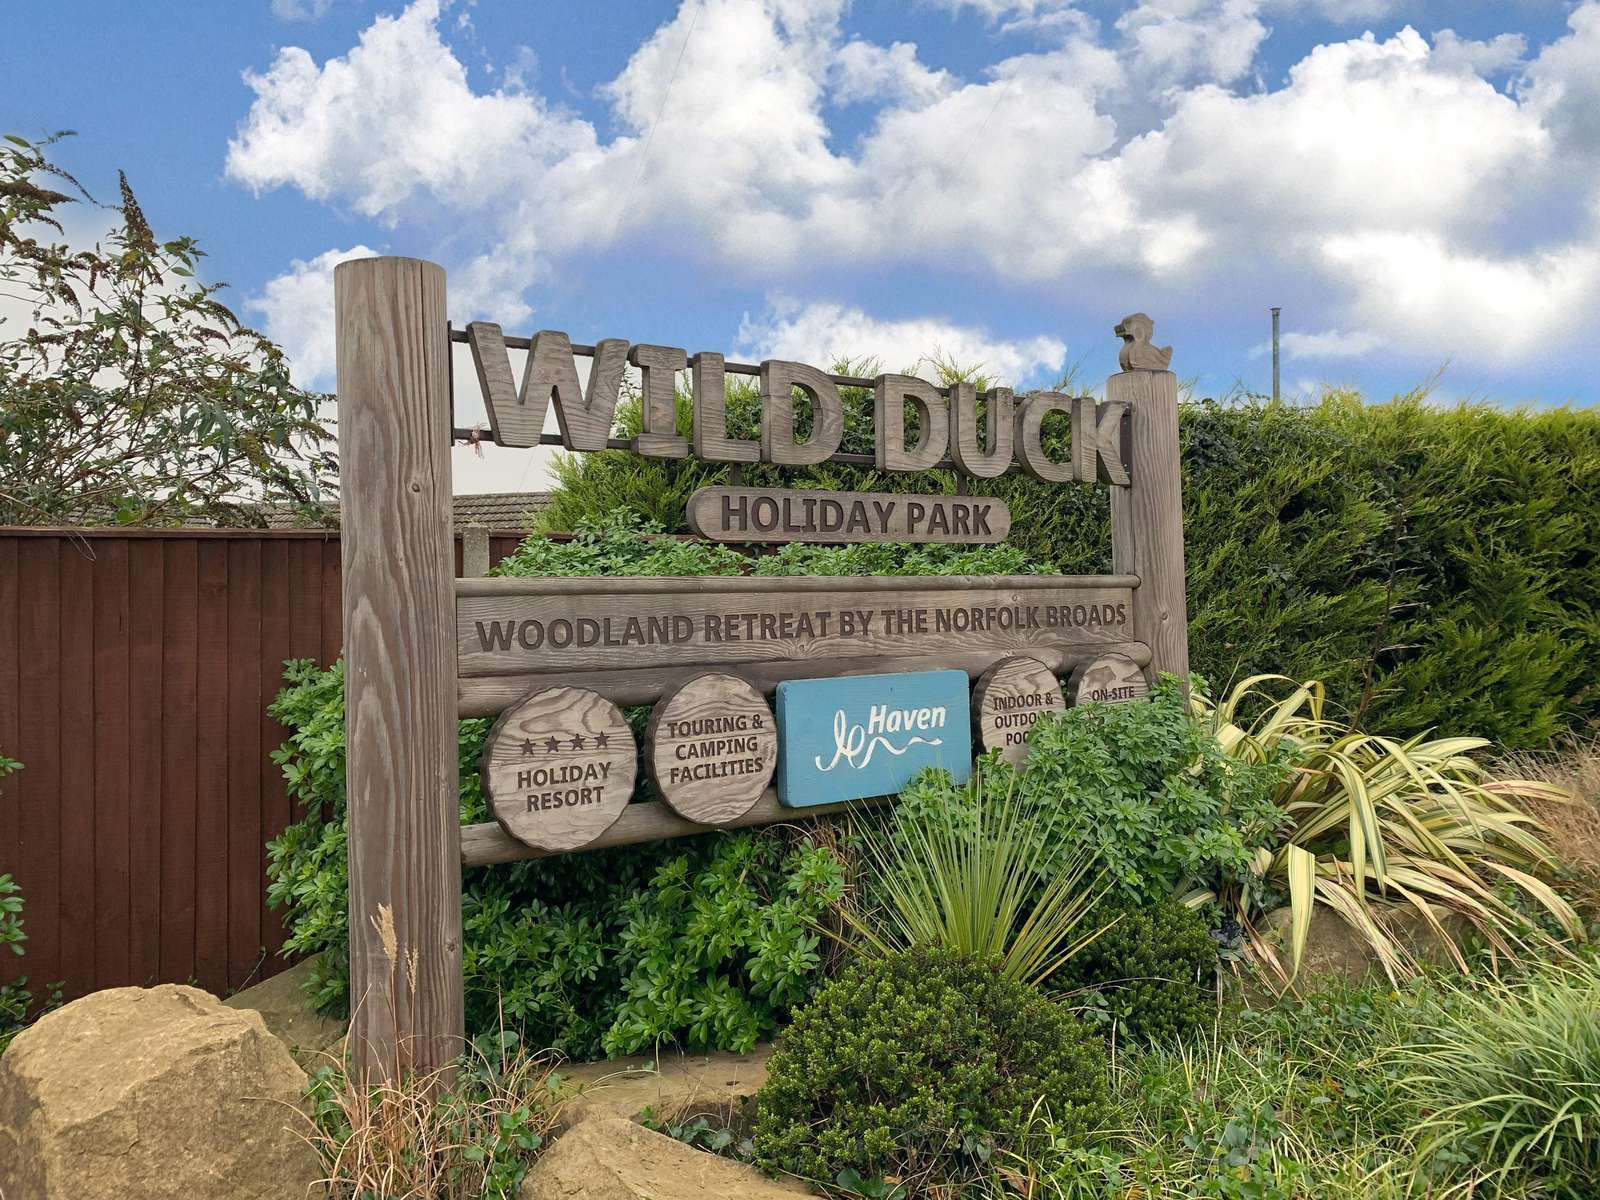 Why not visit Wild Duck and make memories with the family.